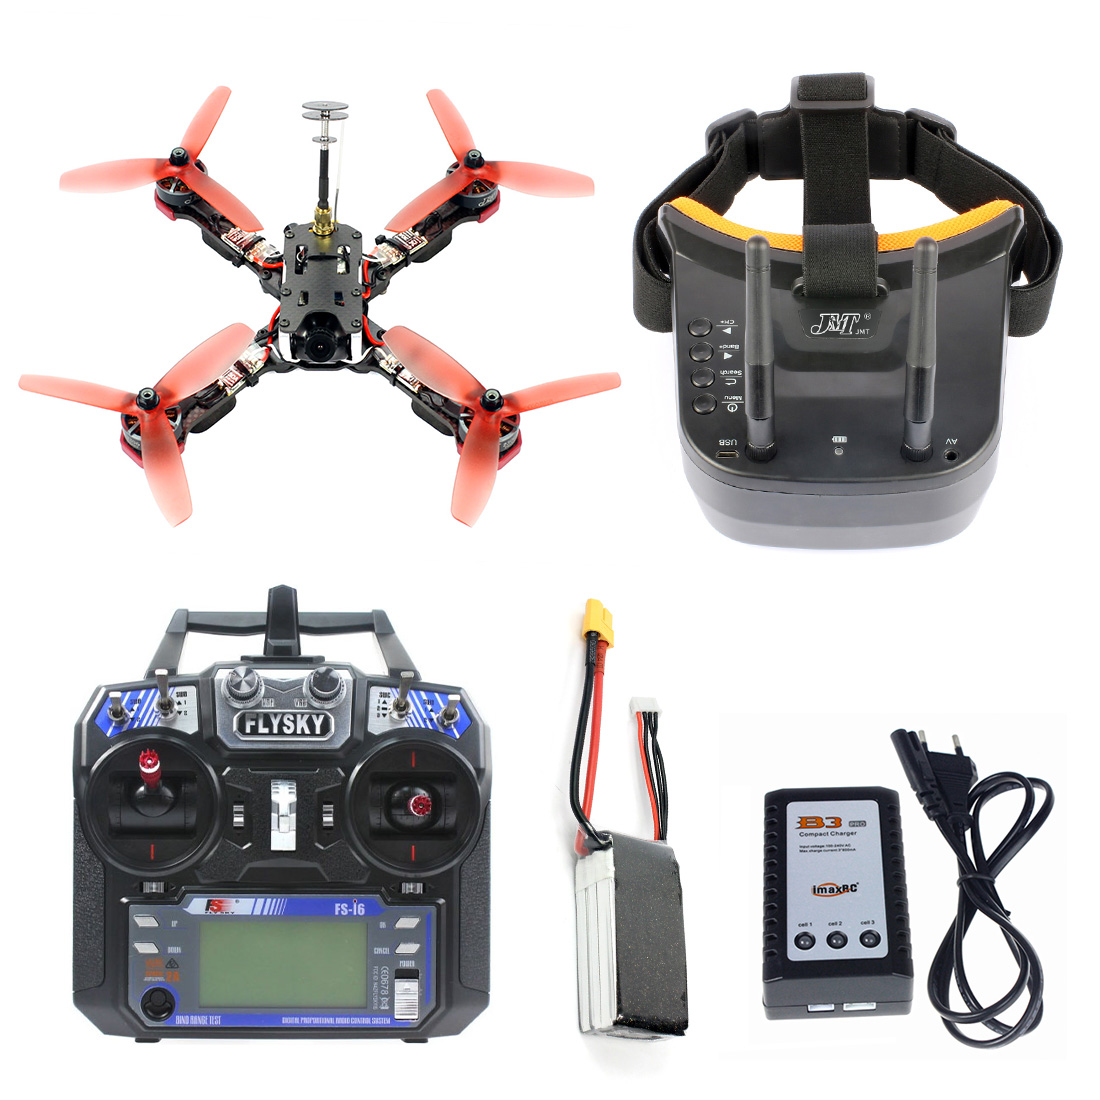 218mm 2.4G 6CH RC Racing Quadcopter RTF Betaflight F4 Pro V2 BLHeli-s 30A 5.8G 25/200/400mW VTX Mini 700TVL Camera FPV Drone